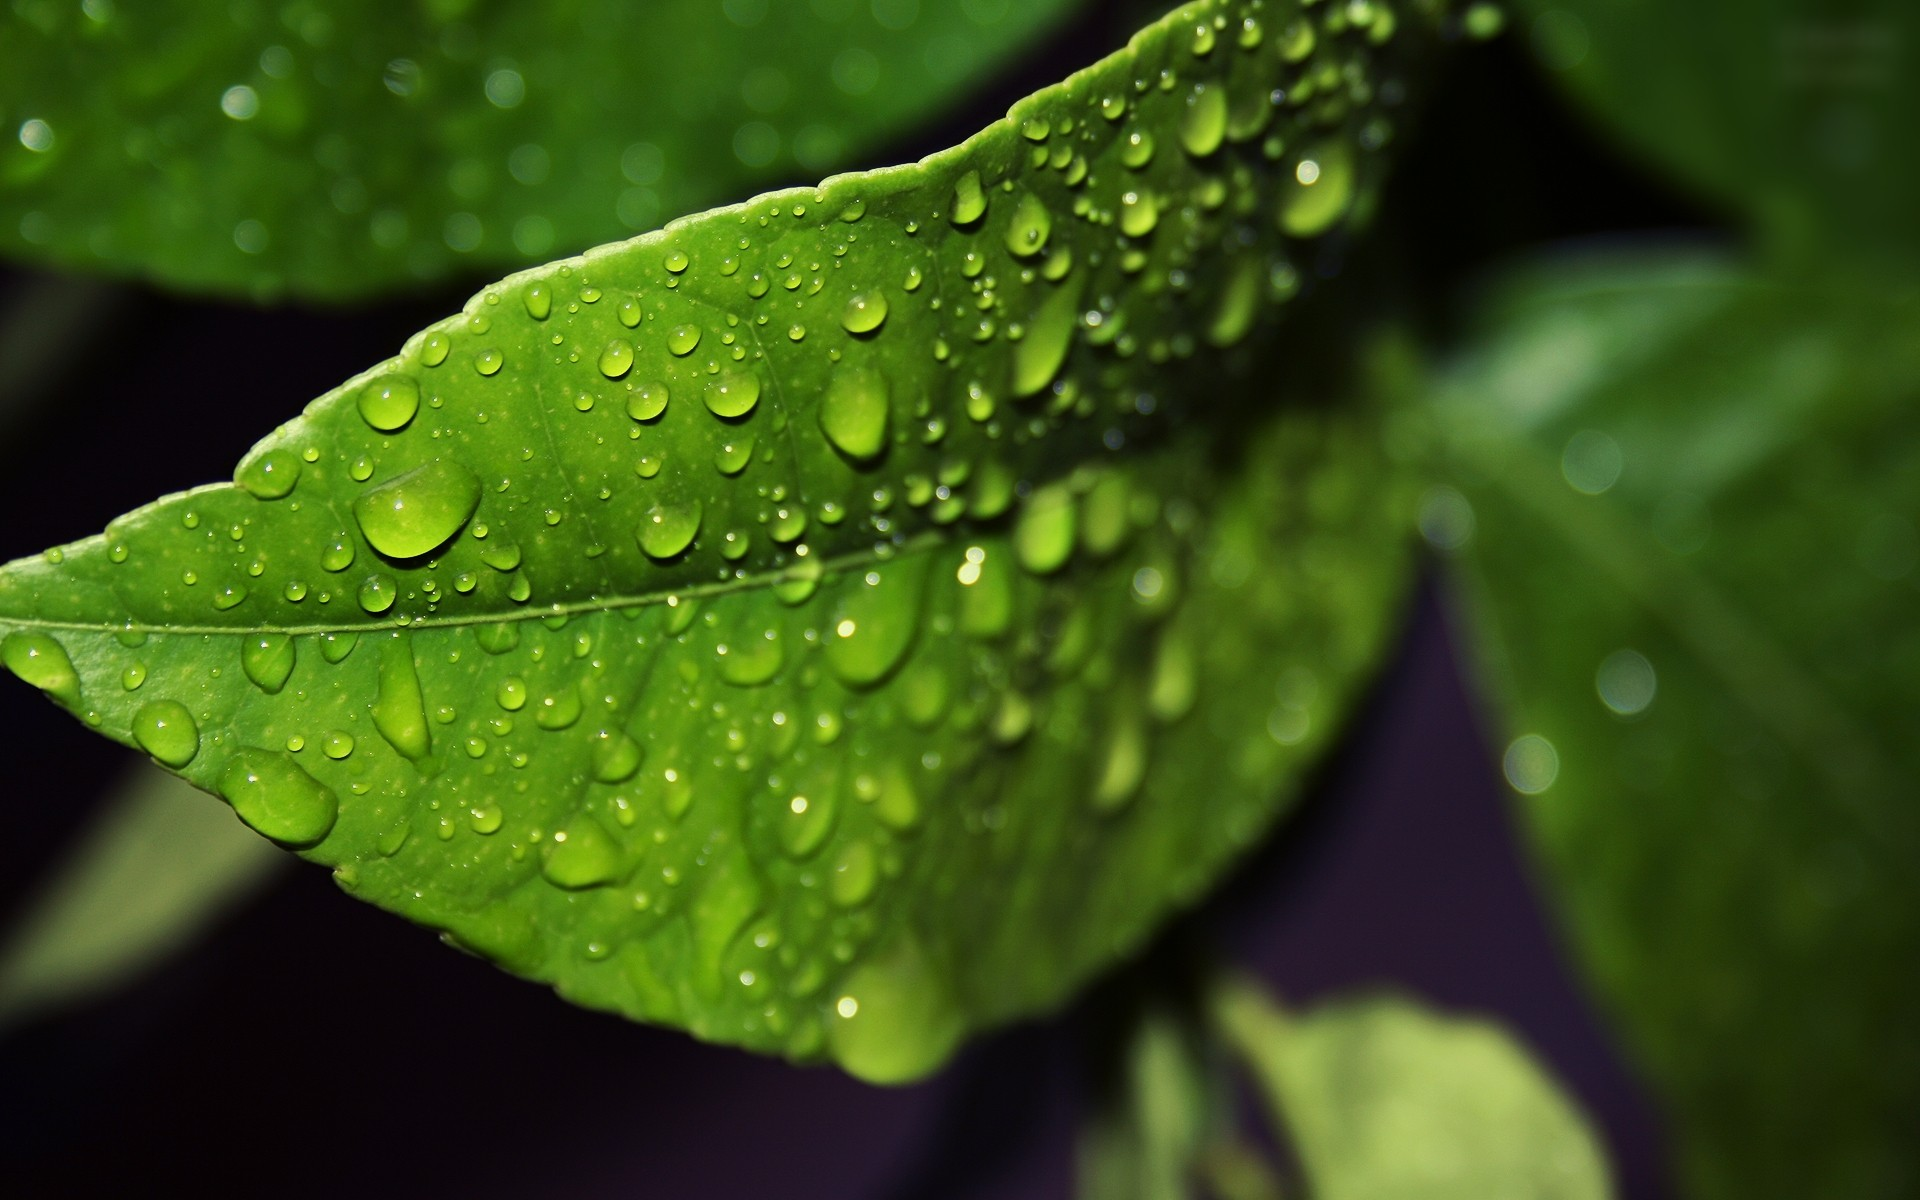 Falling Water Wallpaper 1080p Green Nature Leaves Water Drops Macro Wallpaper